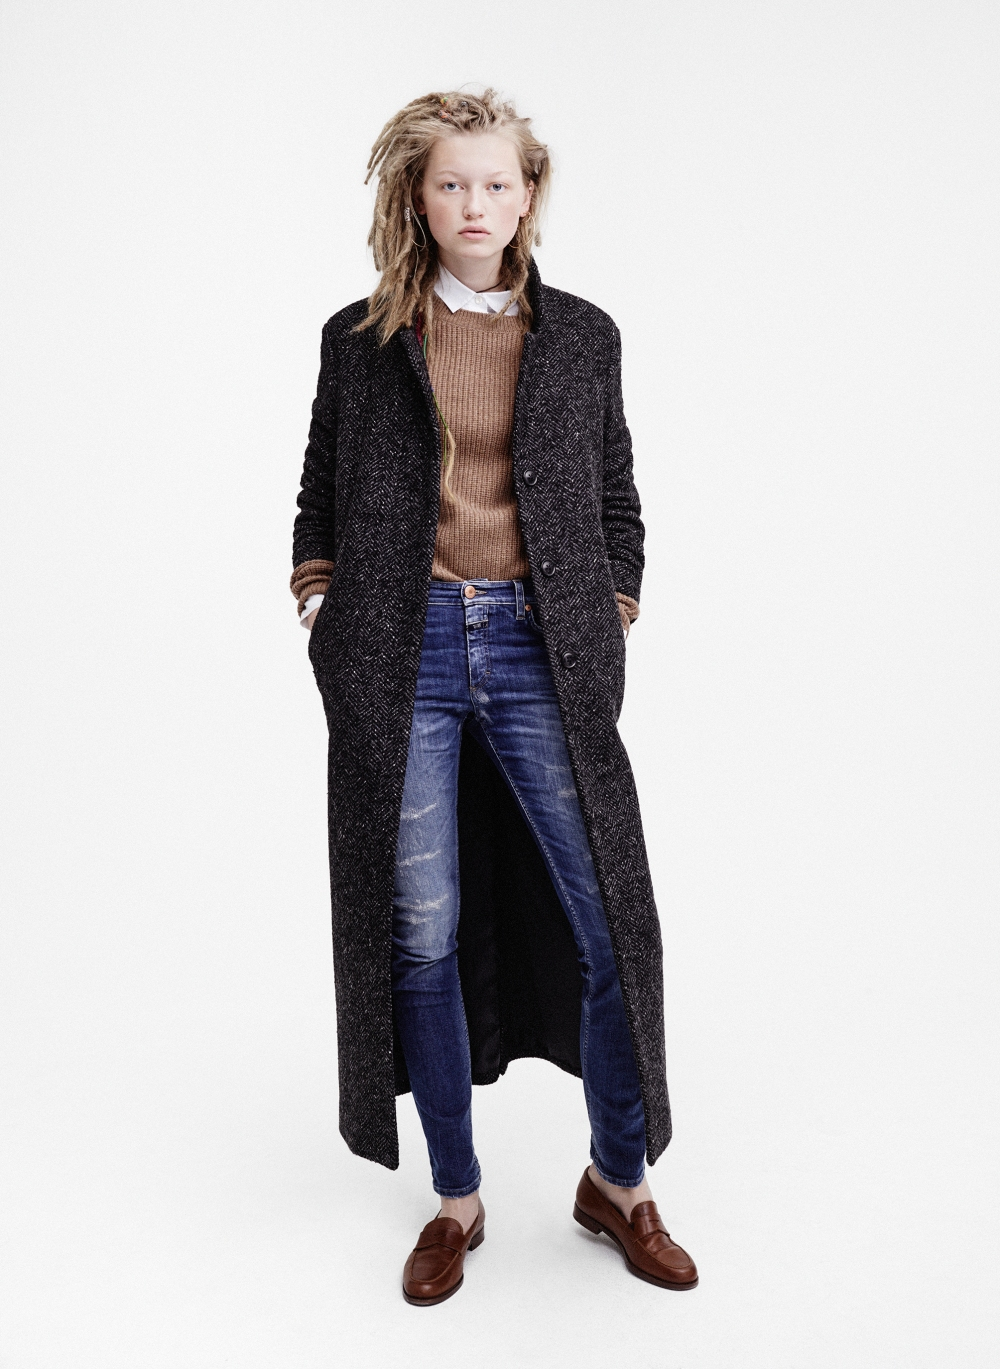 Pauline GÅrtler from the Closed Network - in the Bori 85 coat